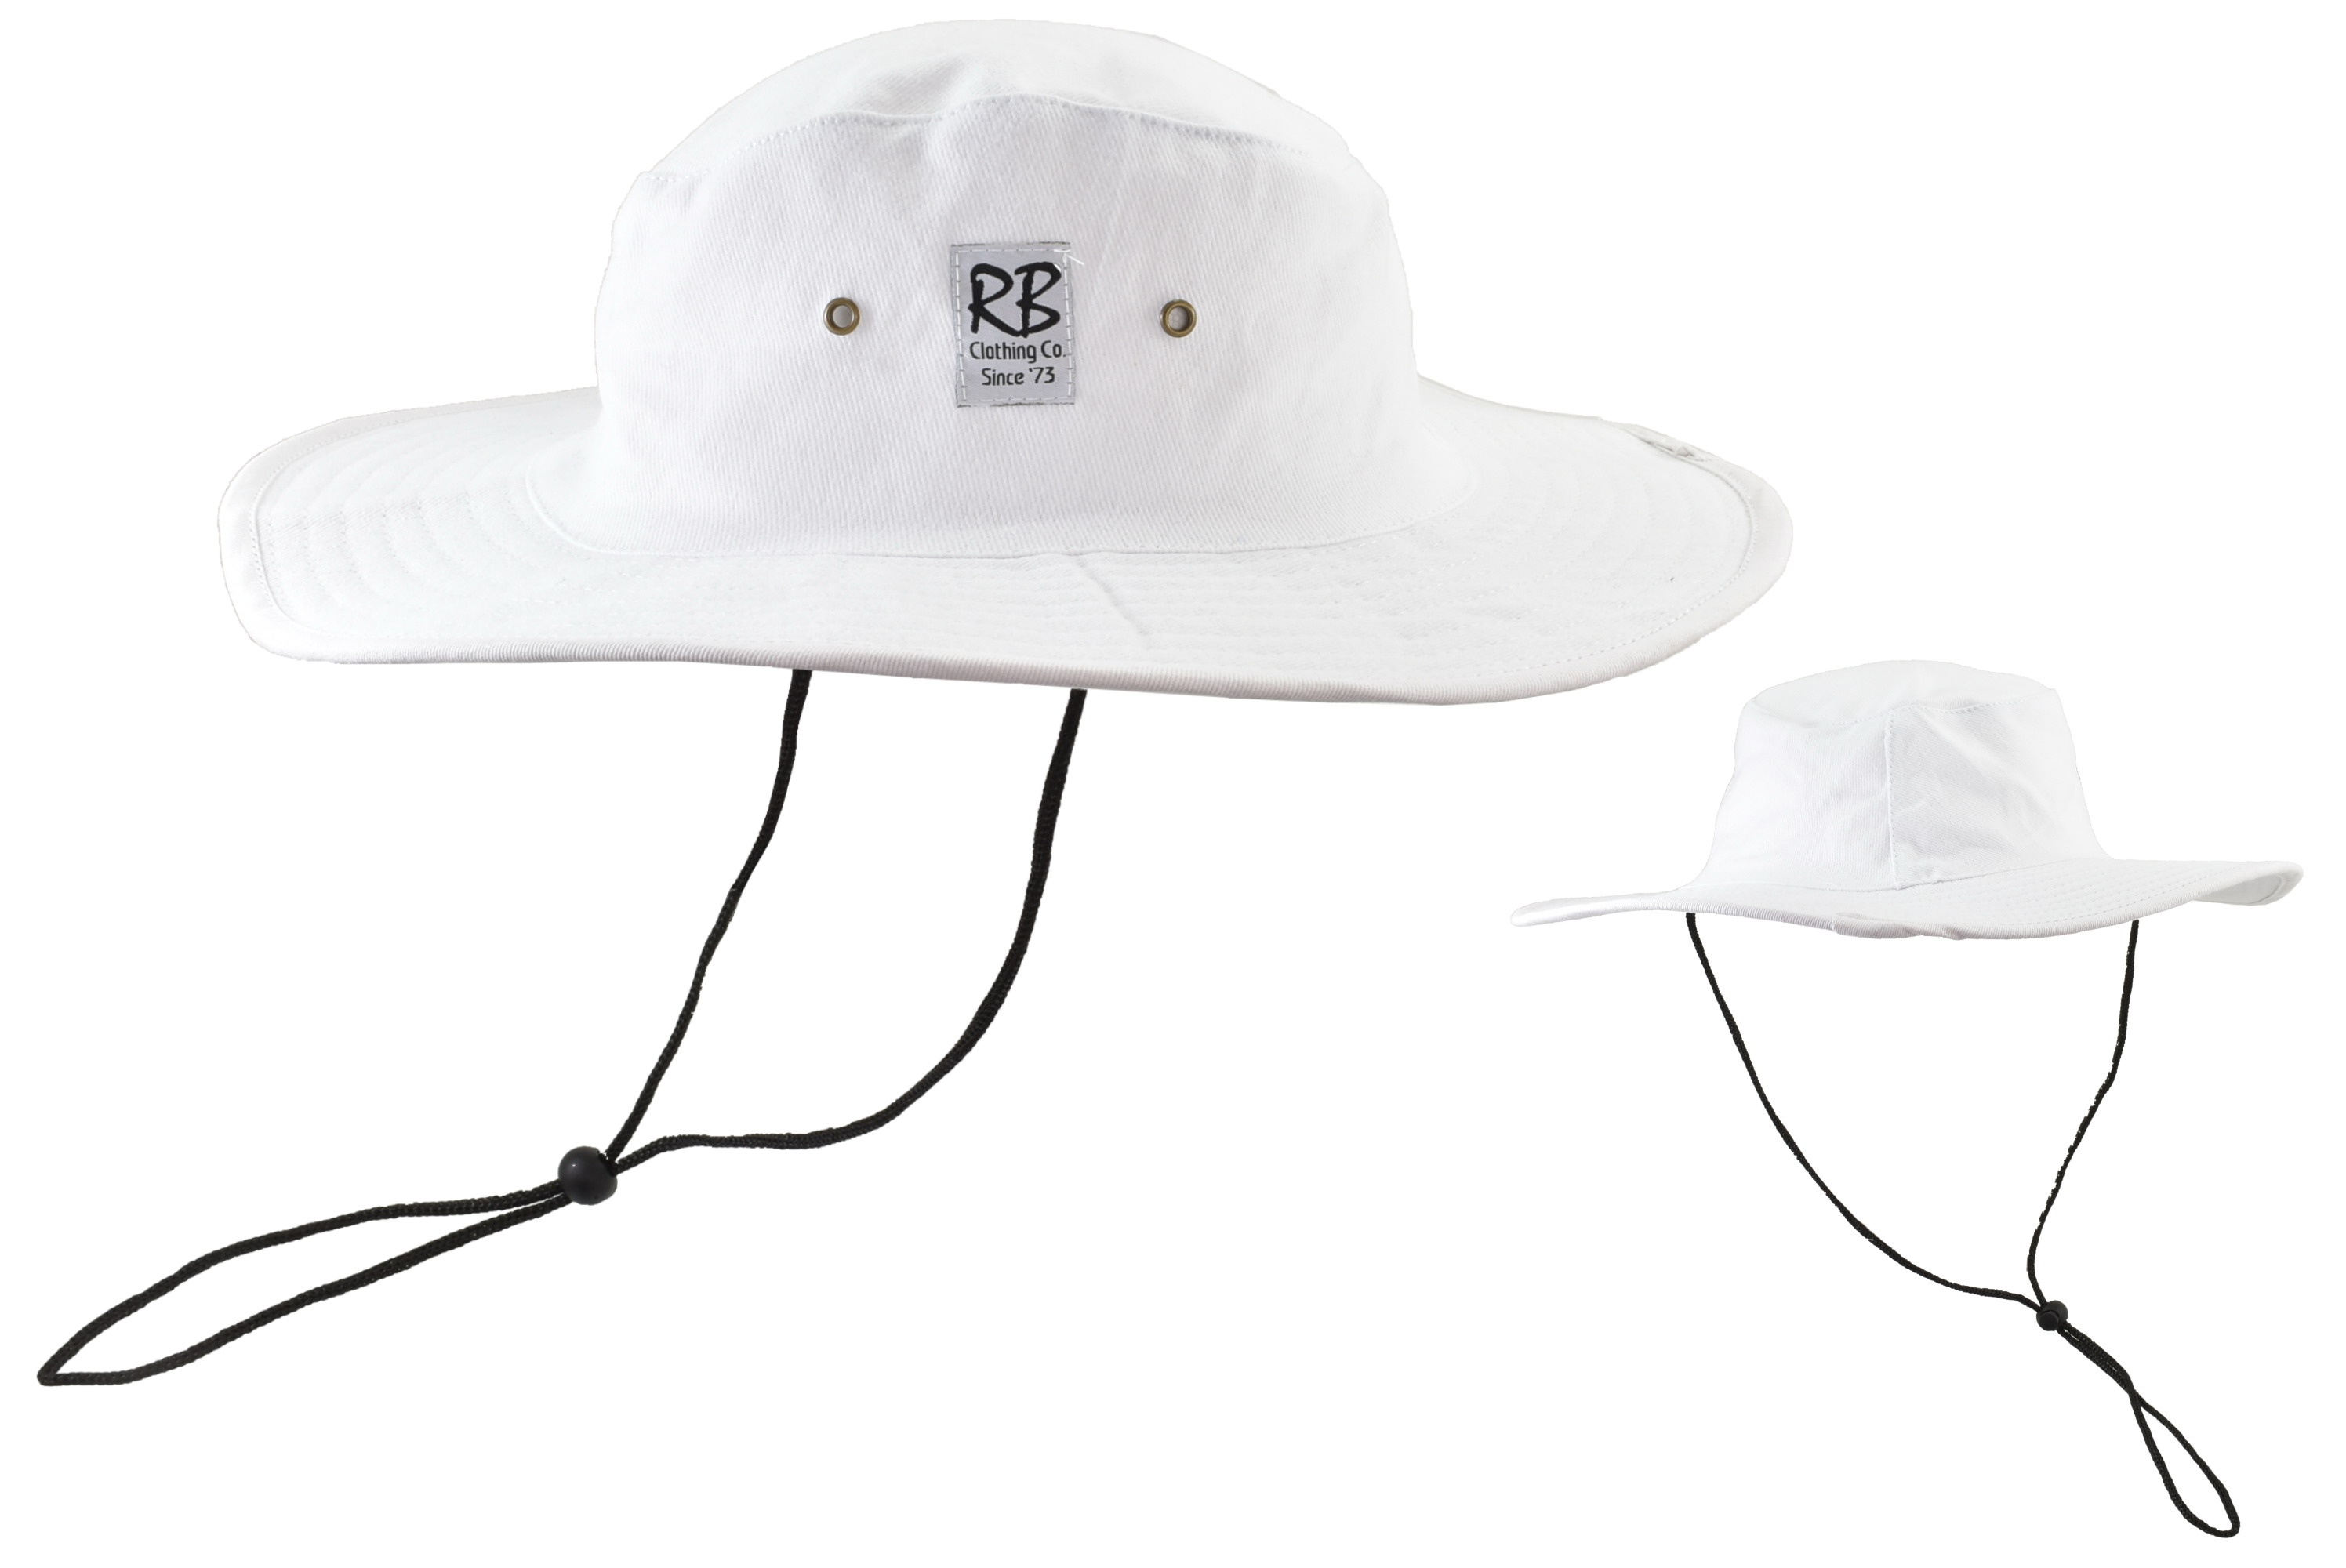 Deluxe Adults Cricket Hat